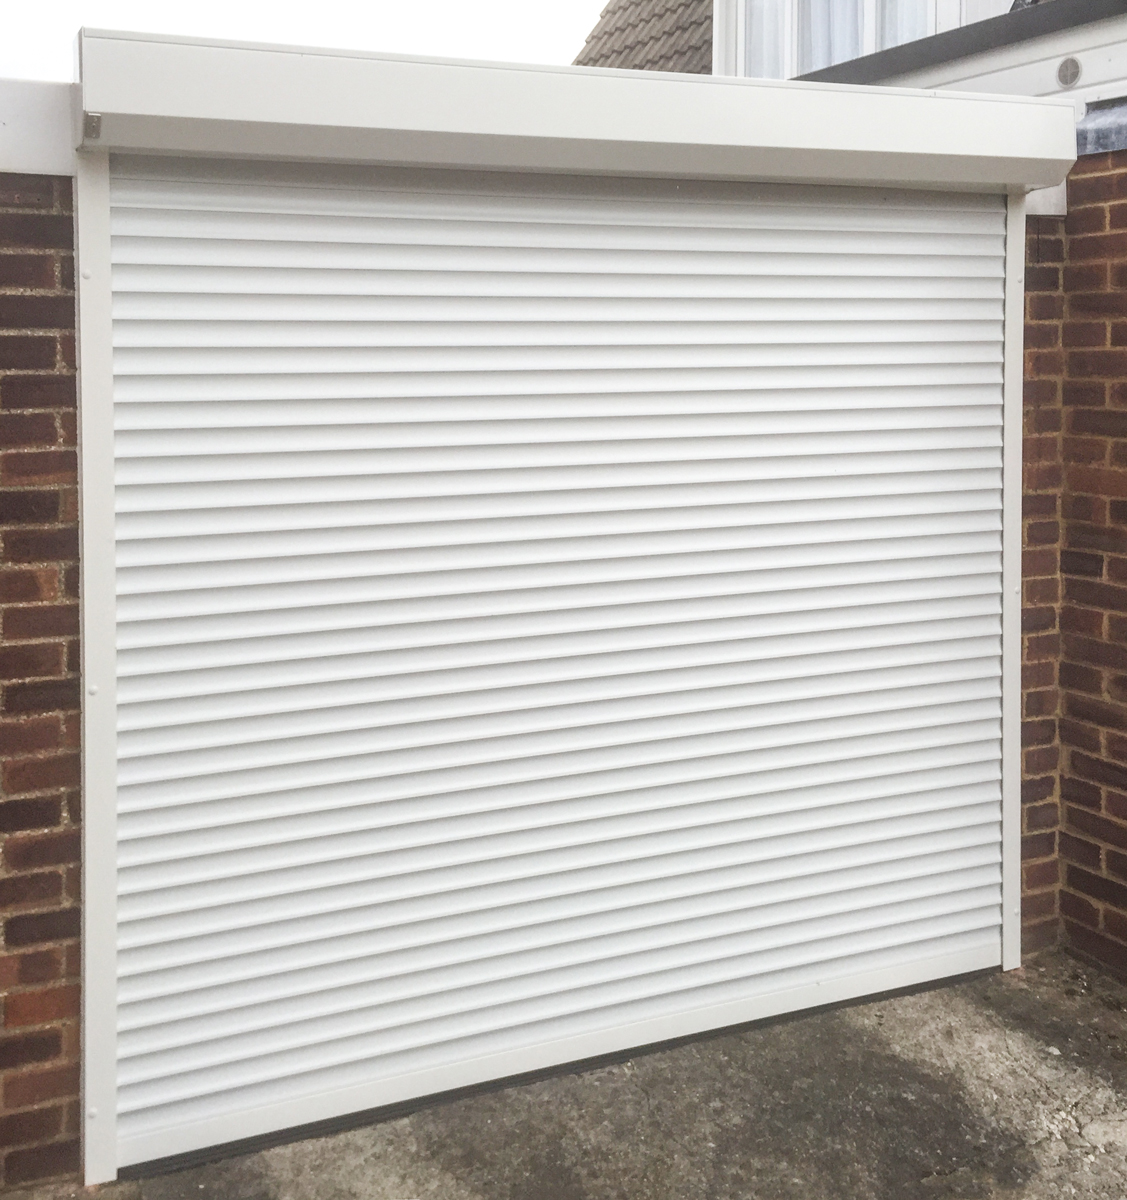 Sliding Gate For Garage Access Garage Doors Garage Door Repairs Installation